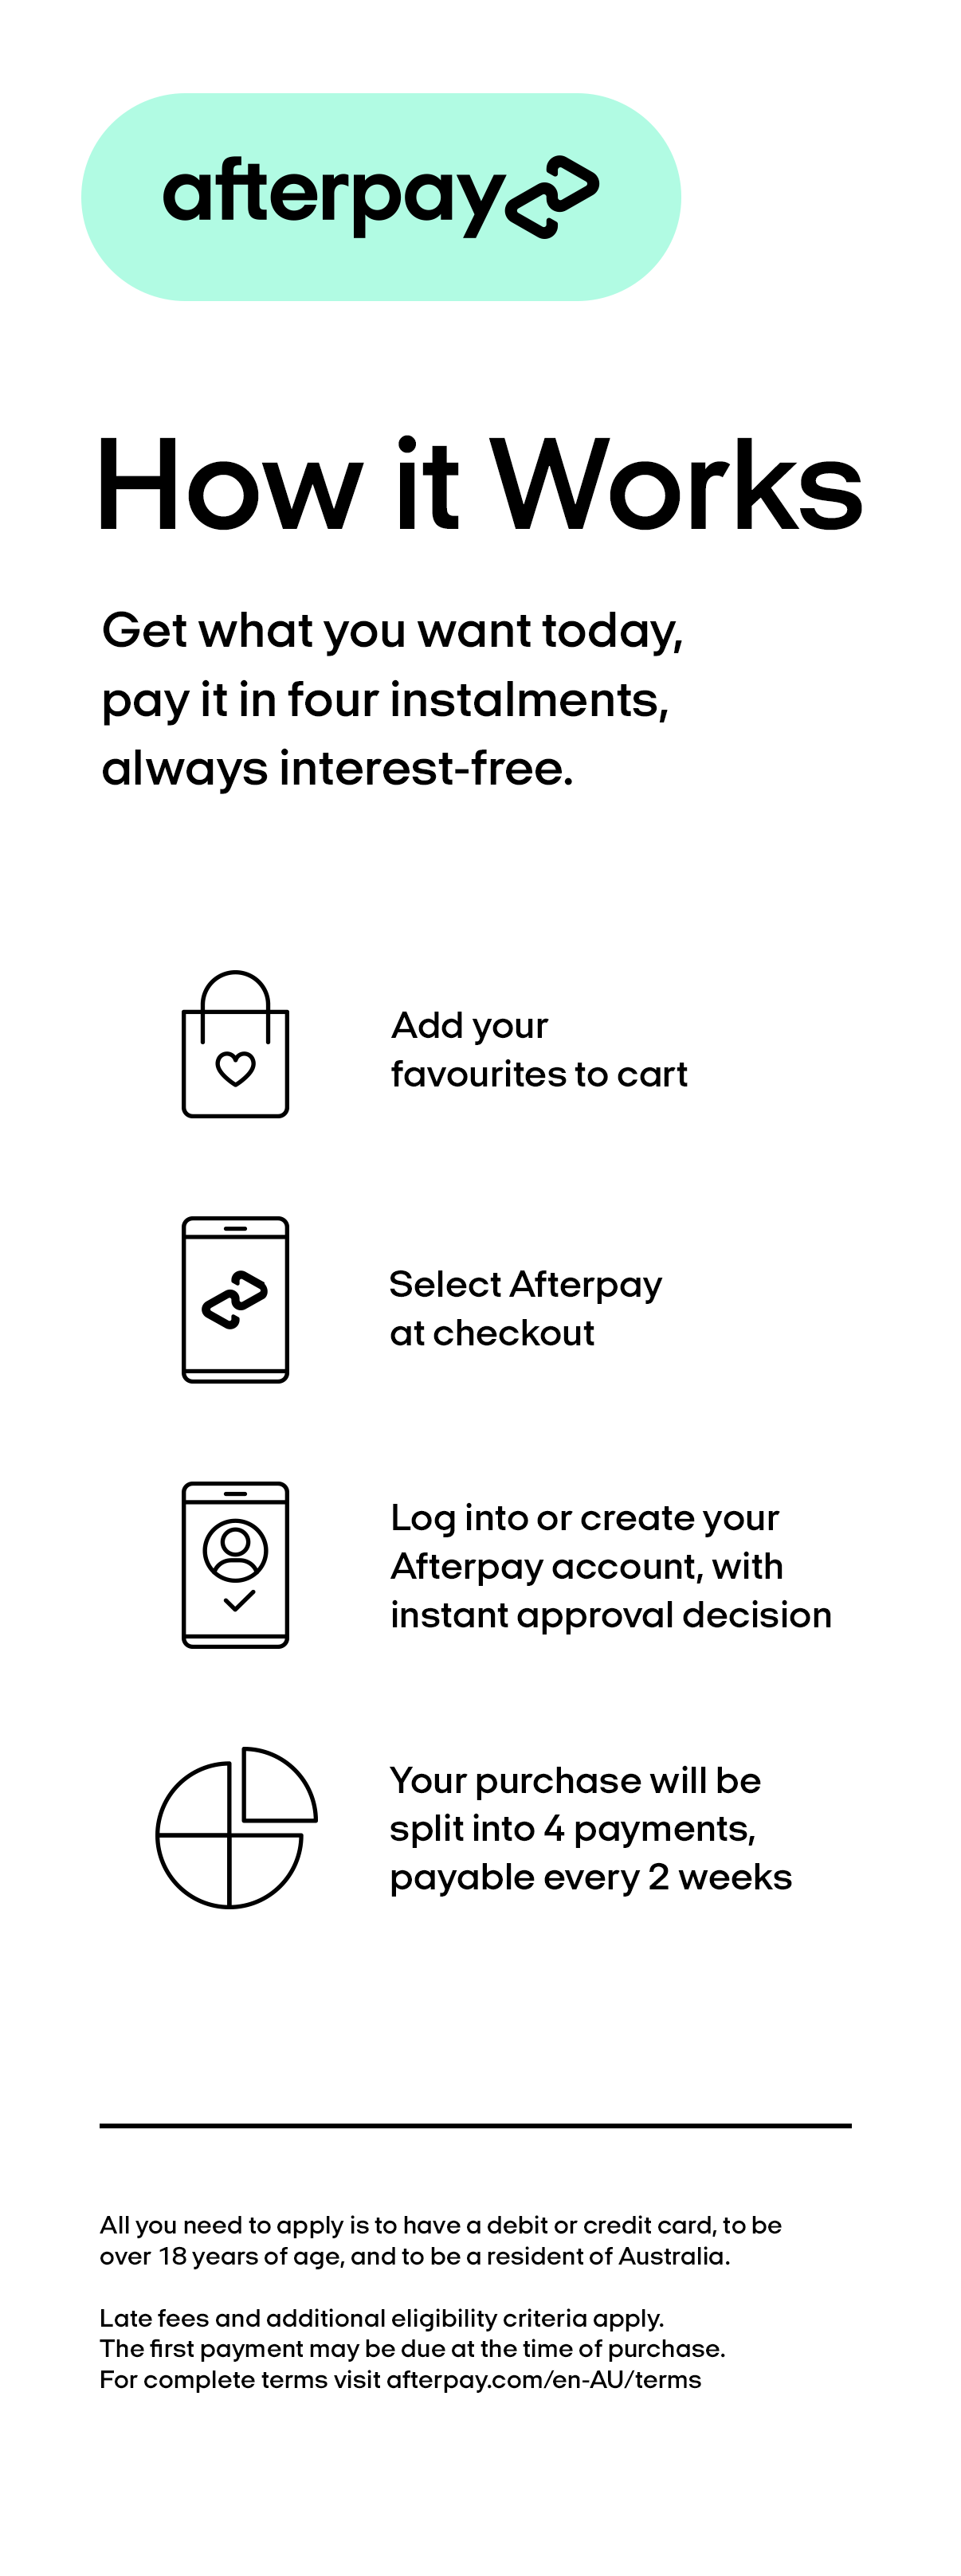 Afterpay get what you want today, pay it in four instalments, always interest-free.